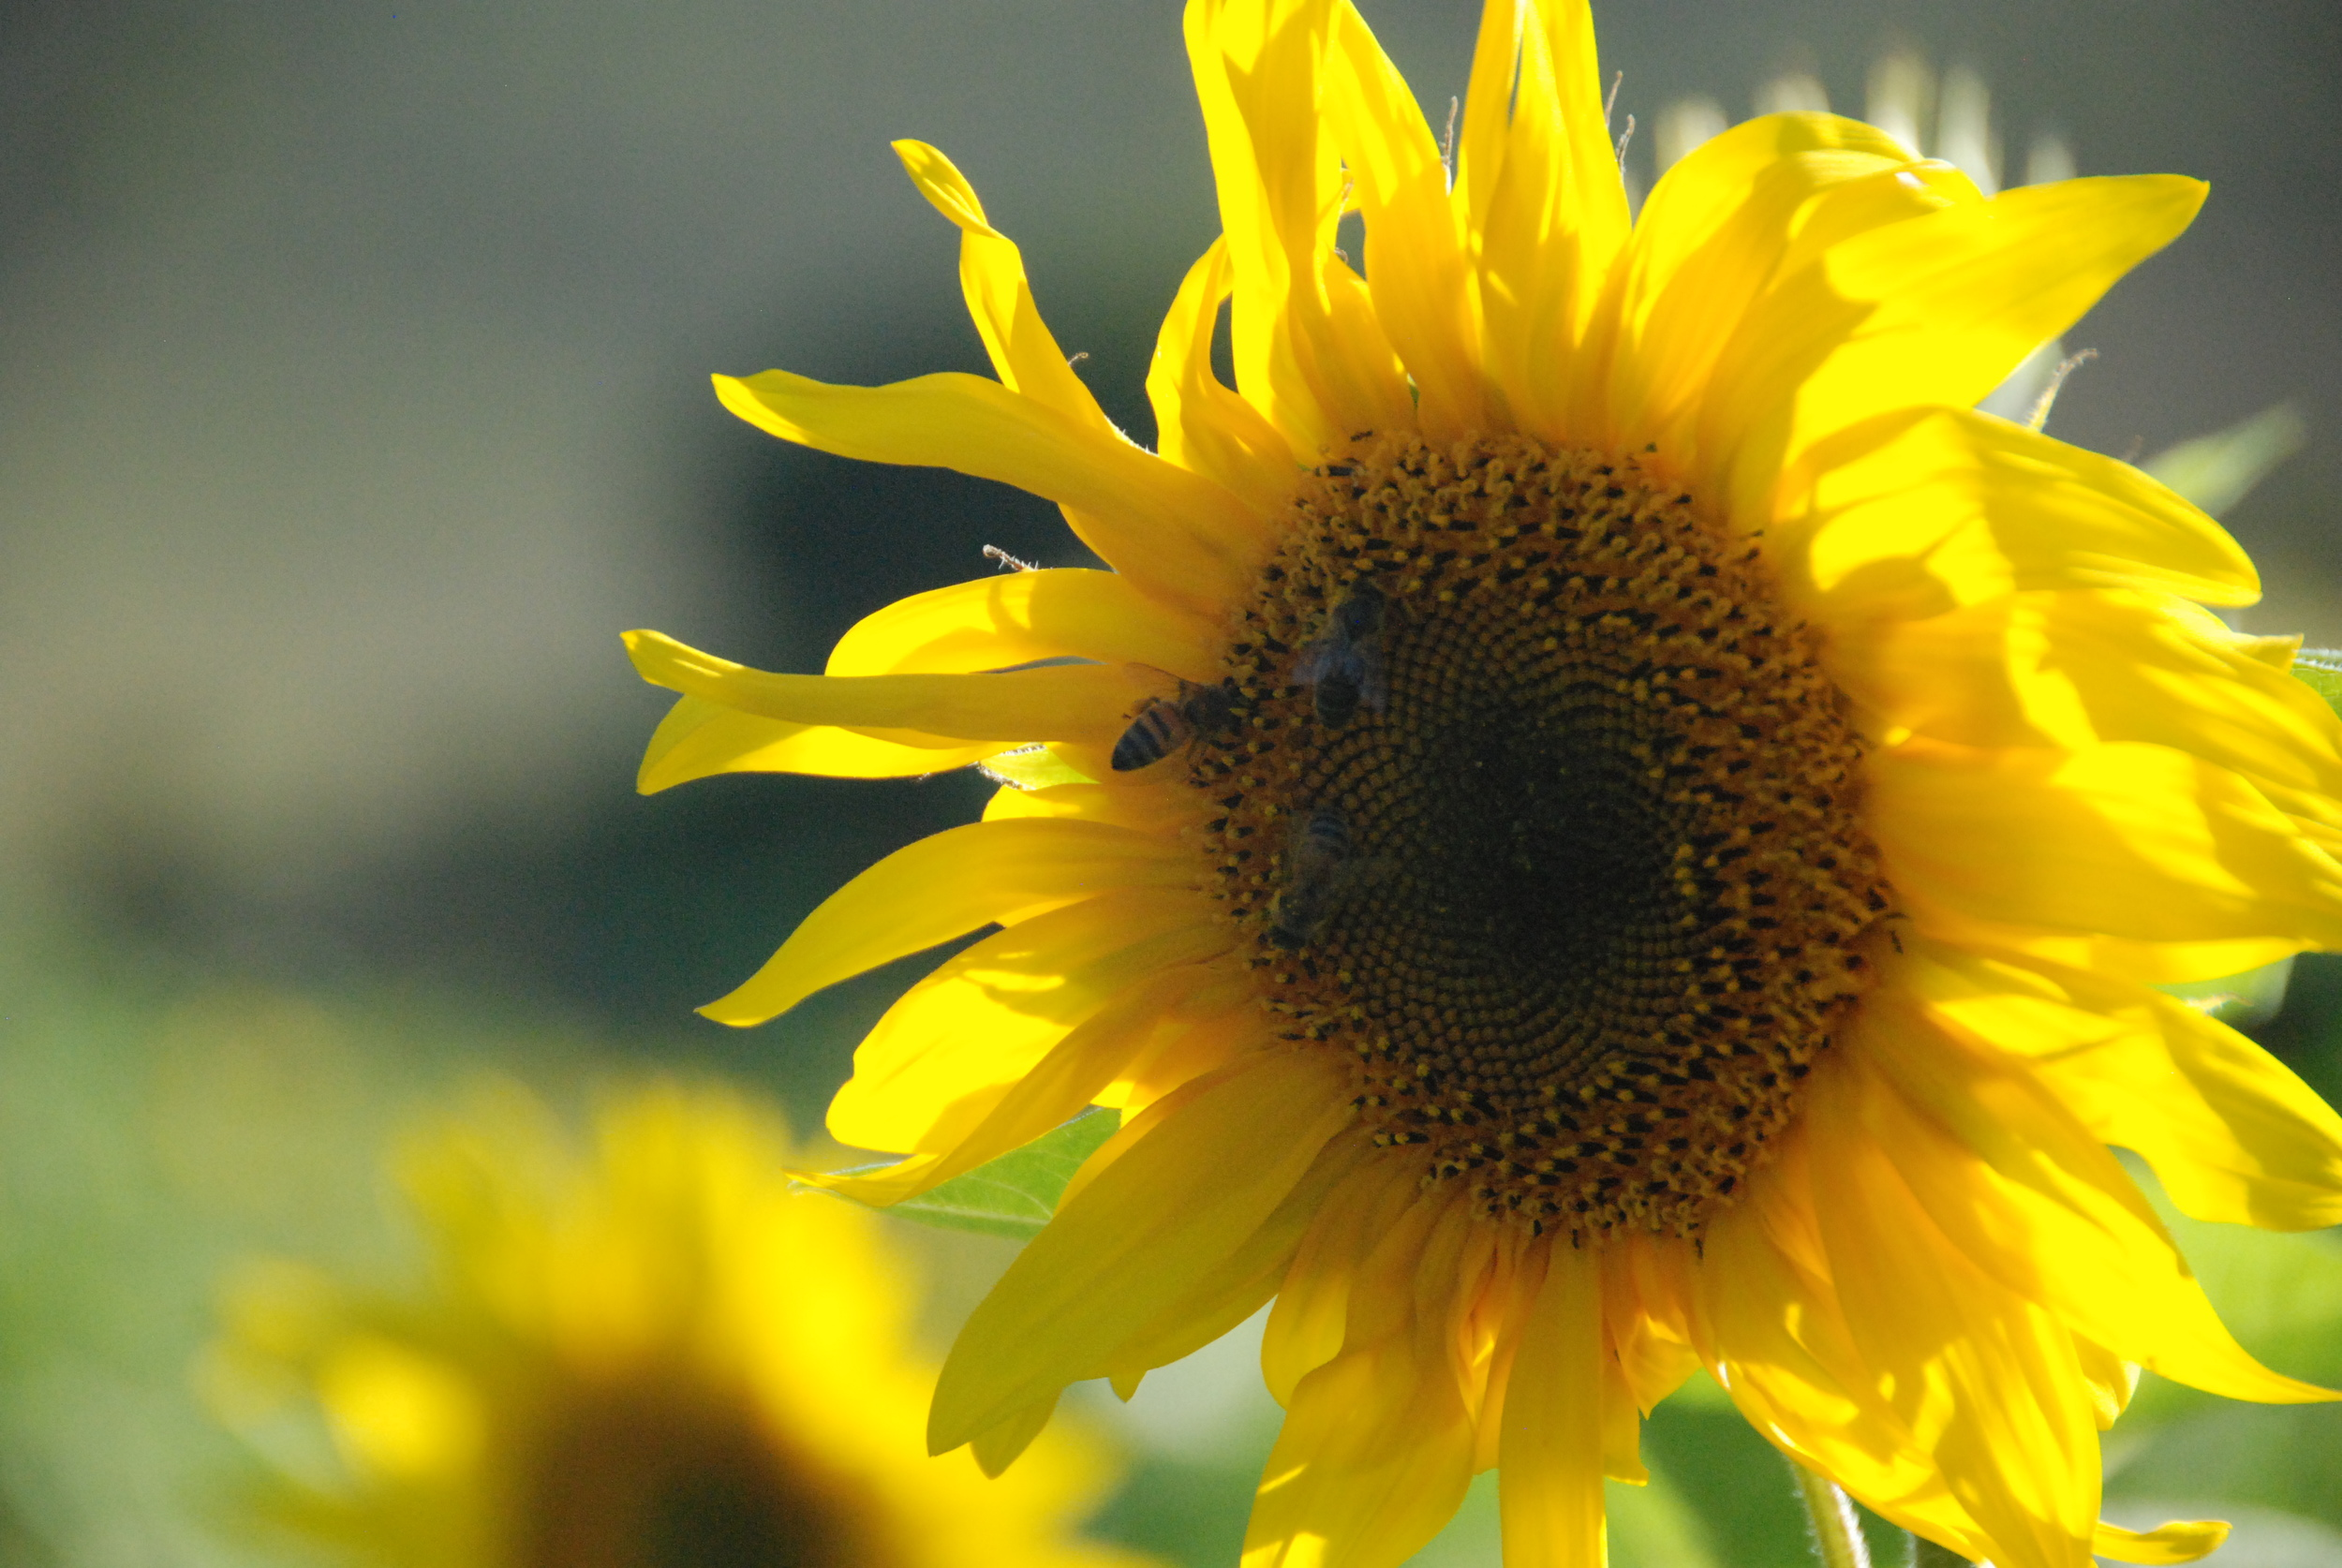 Sunflowers in full bloom at the end of Summer